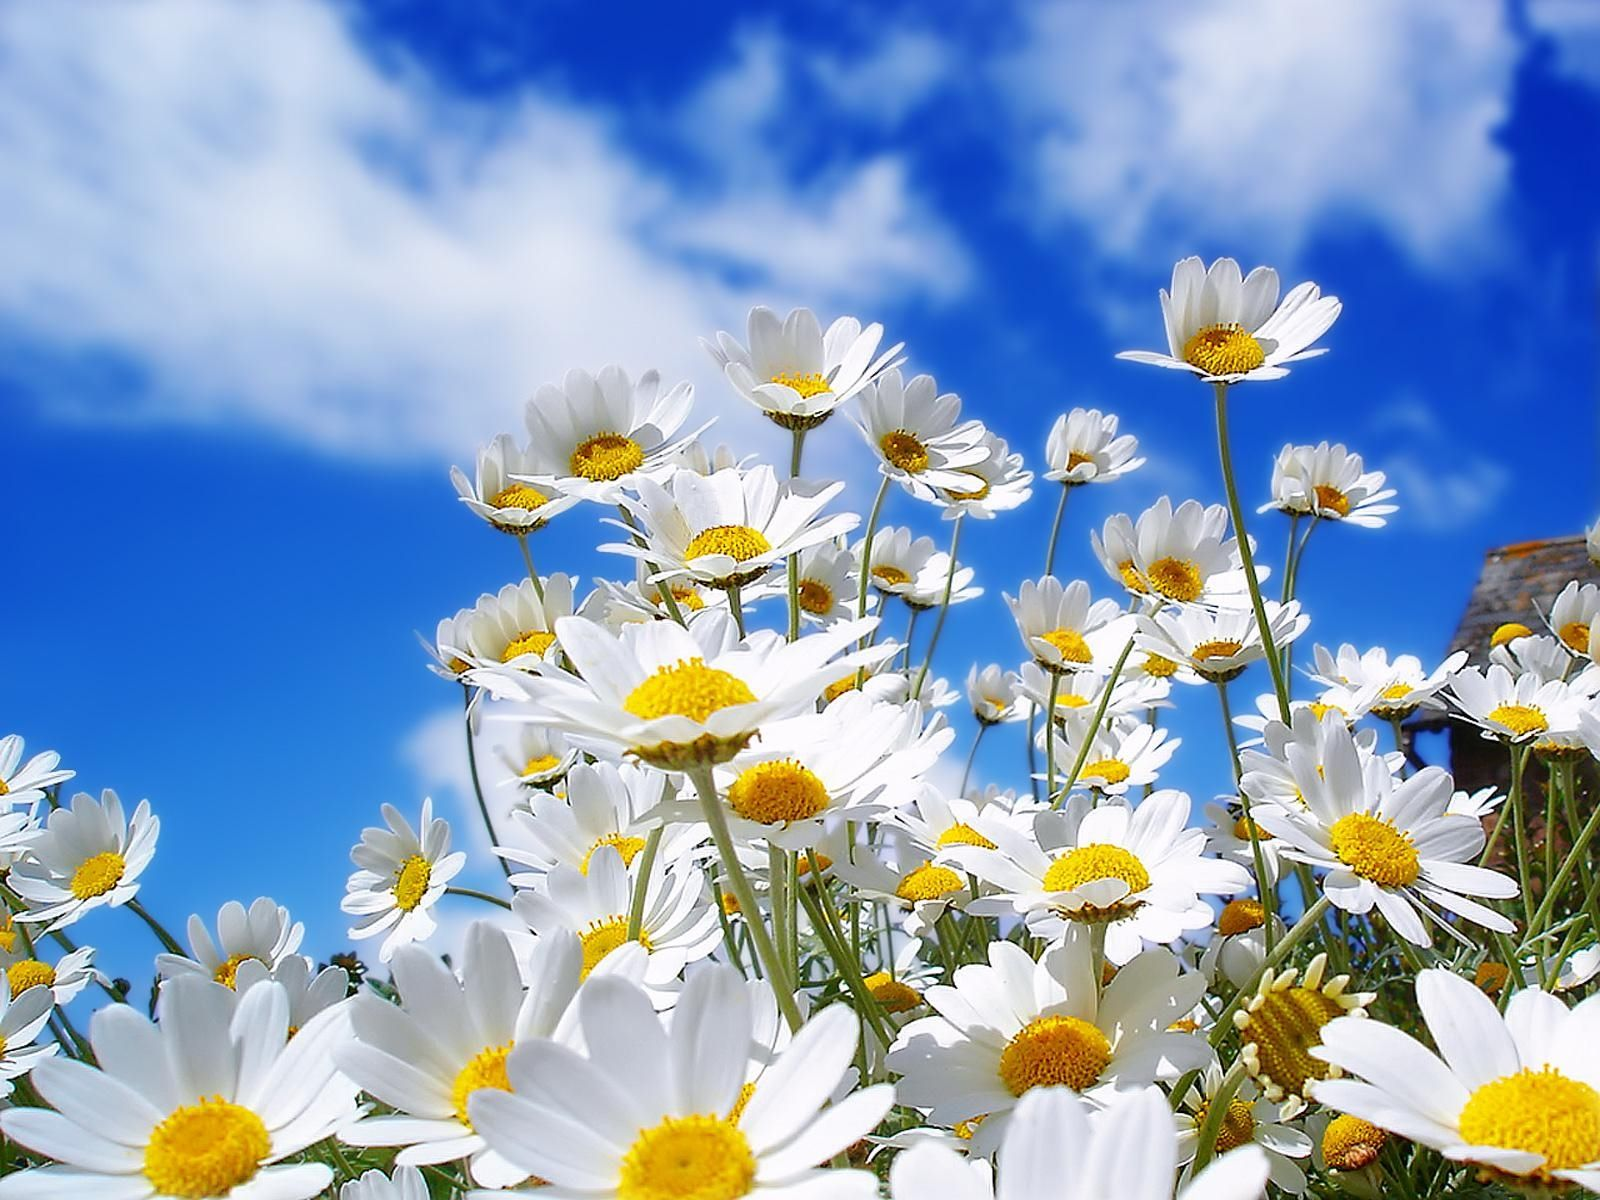 Daisies on a sunny day summer sky day clouds flowers daisy sunny daisies on a sunny day summer sky day clouds flowers daisy sunny izmirmasajfo Gallery